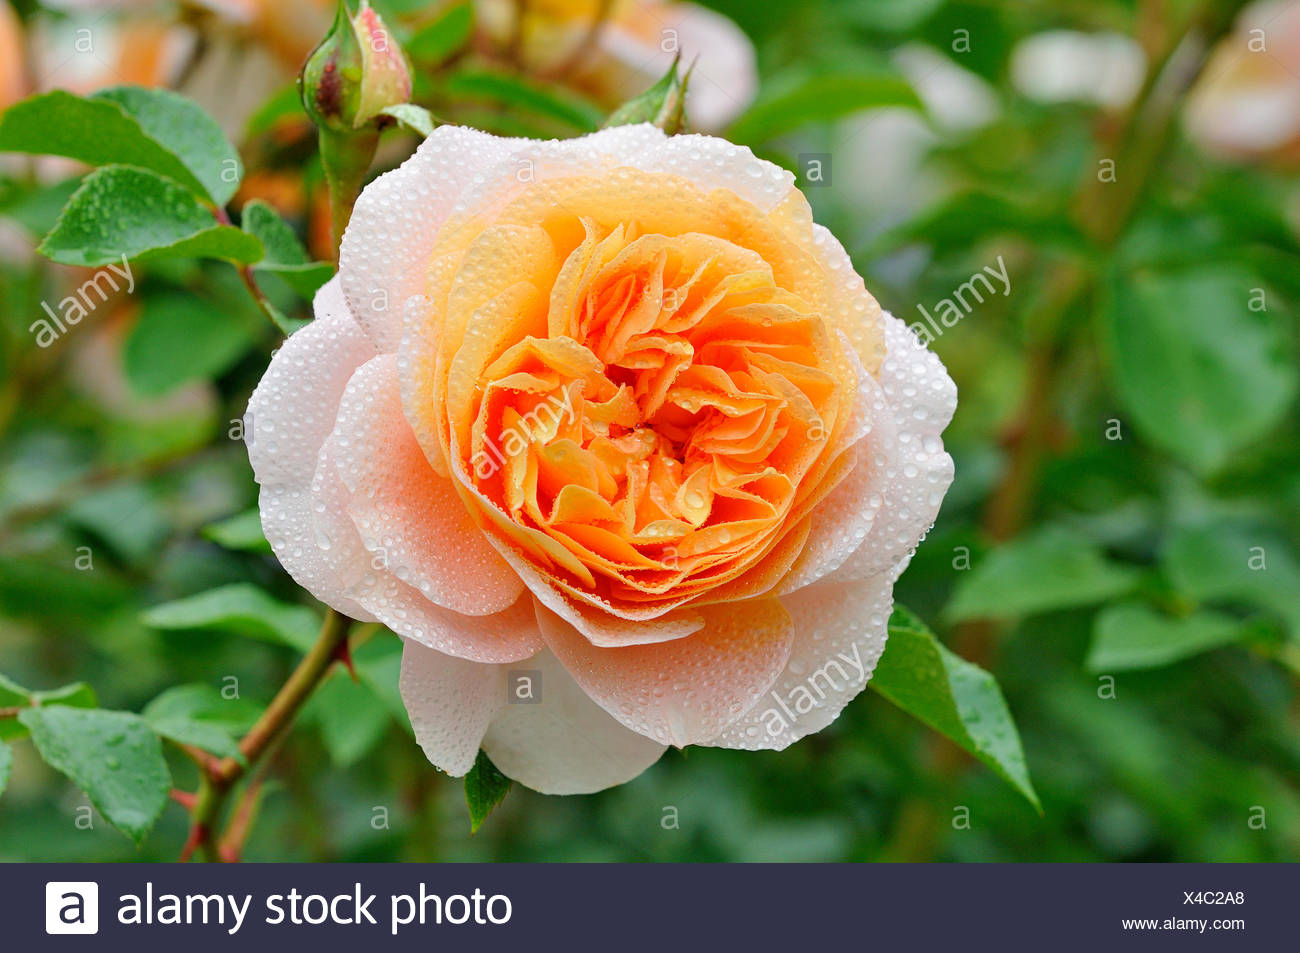 Apricot Coloured Rose Stockfotos Apricot Coloured Rose Bilder Alamy